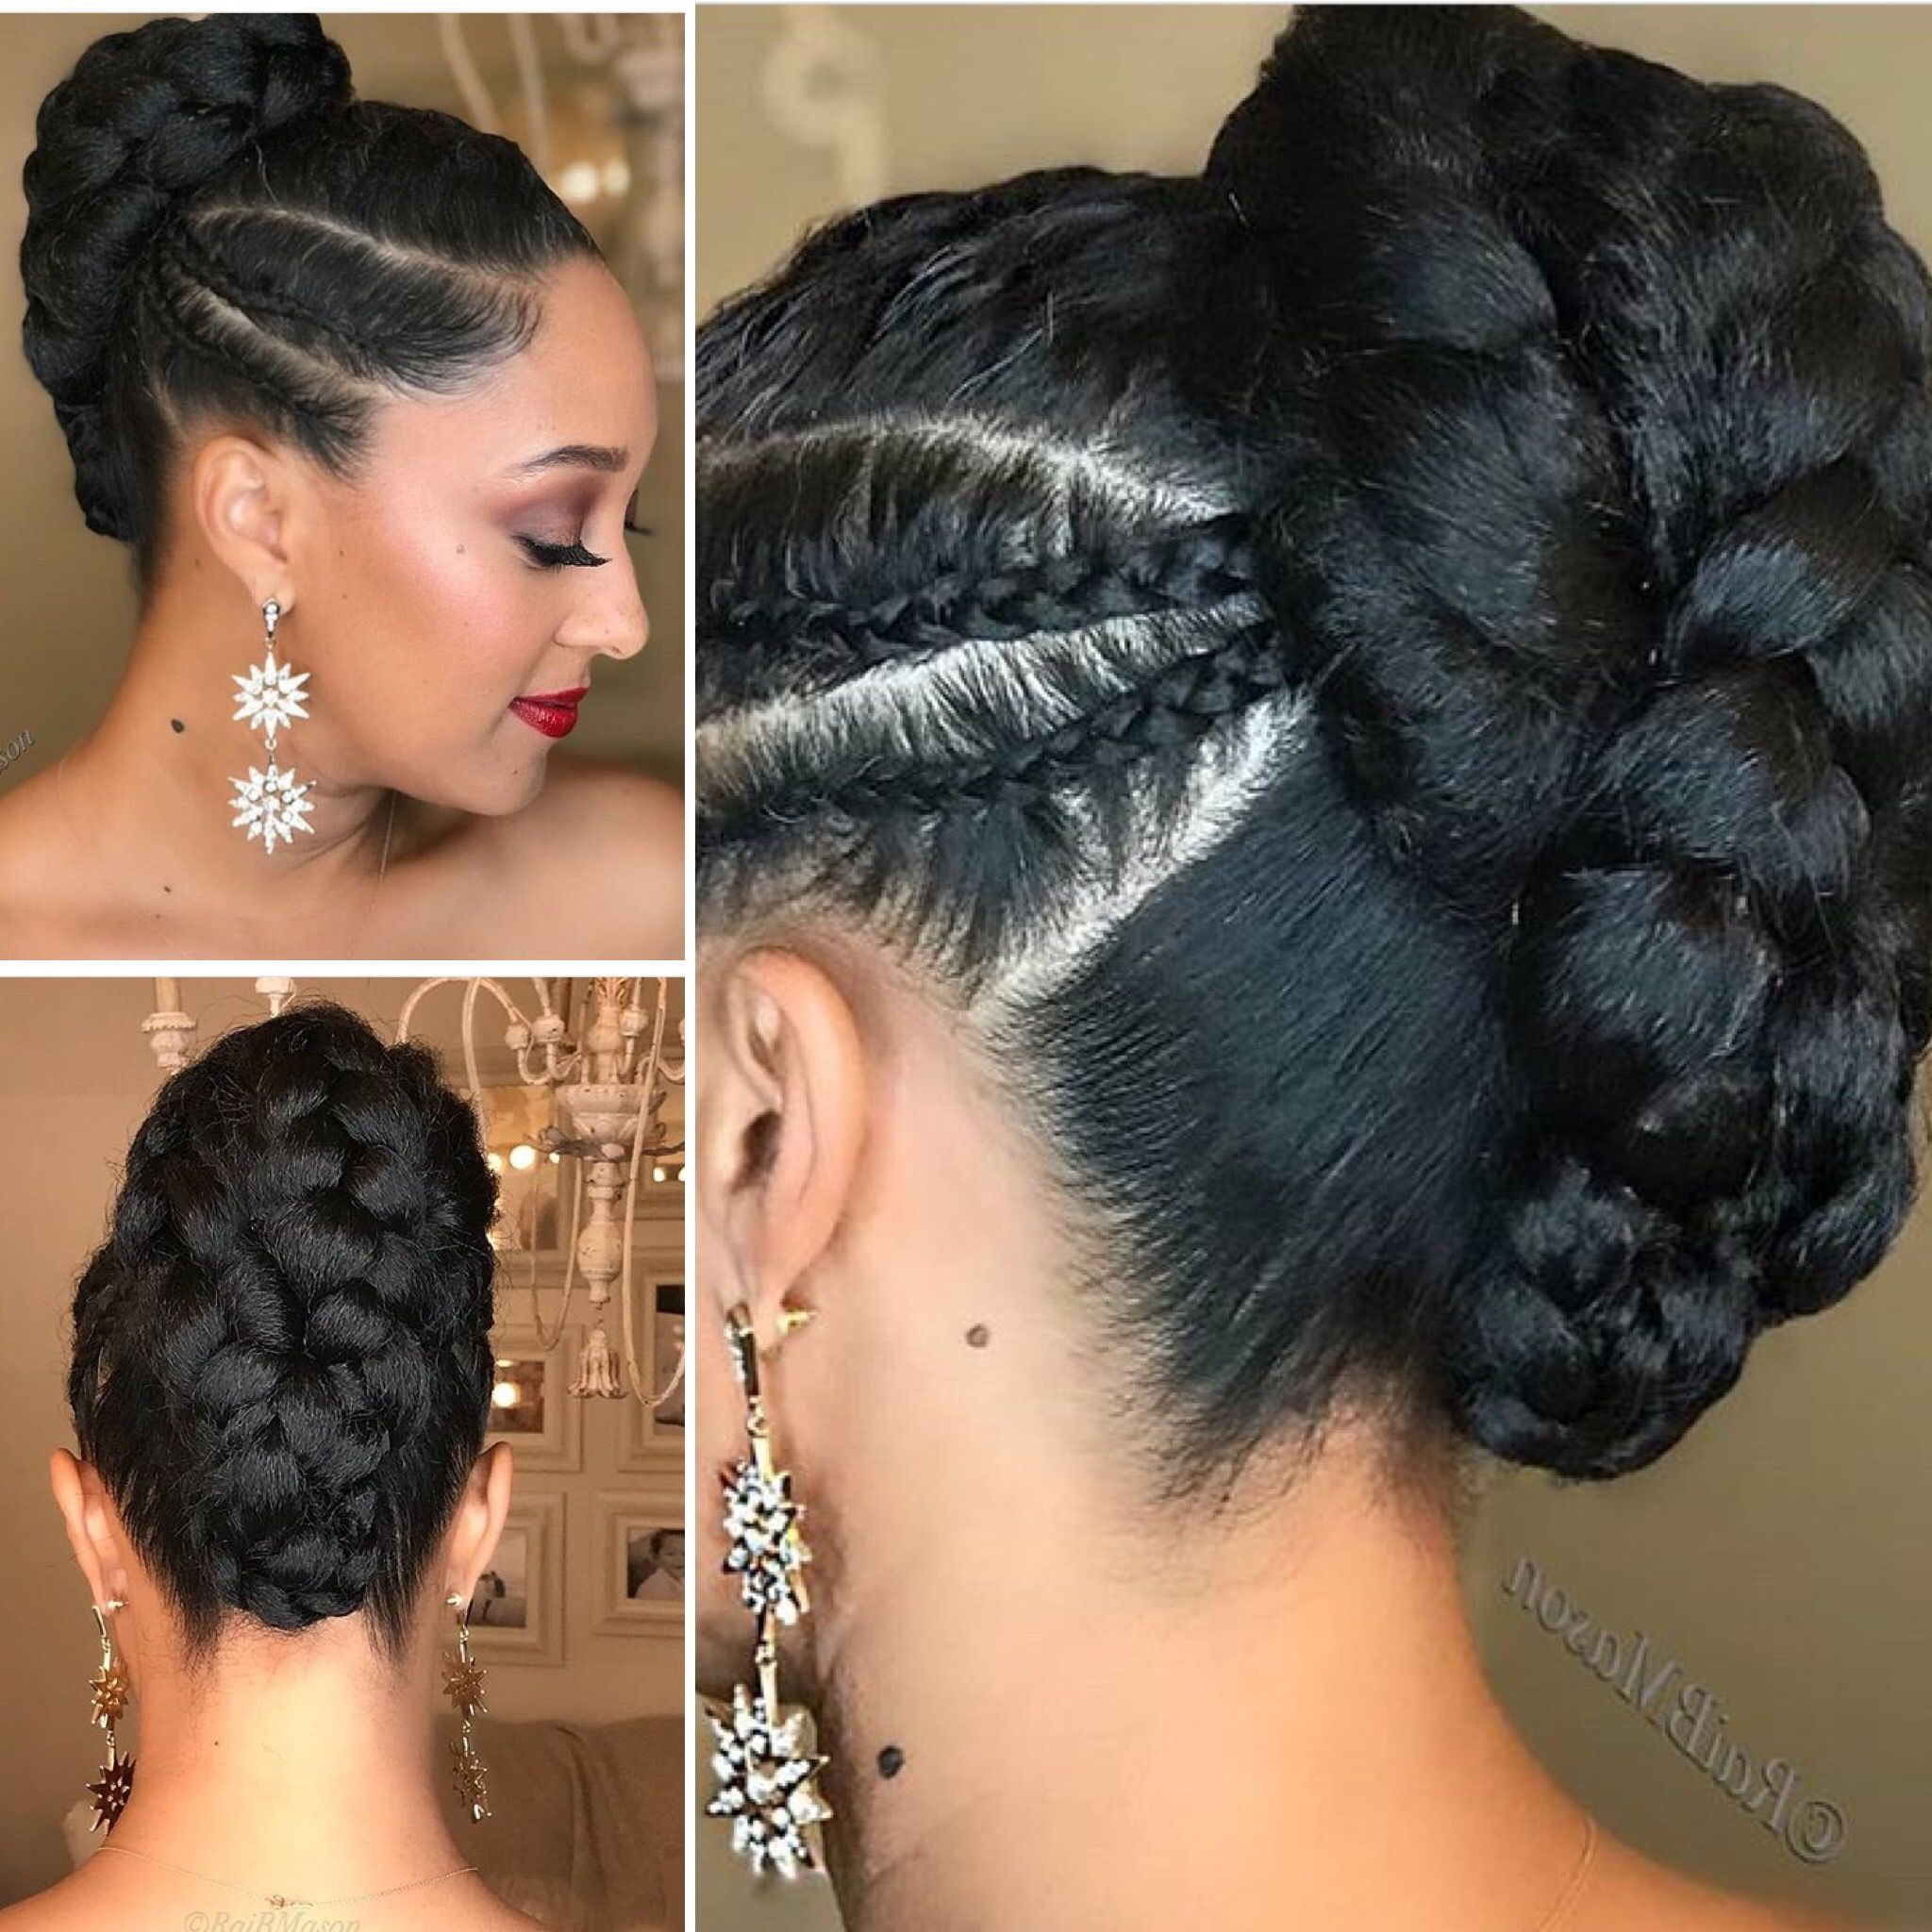 My Vow Renewal Hair Style Natural Hair Updo Natural Hair Styles Hair